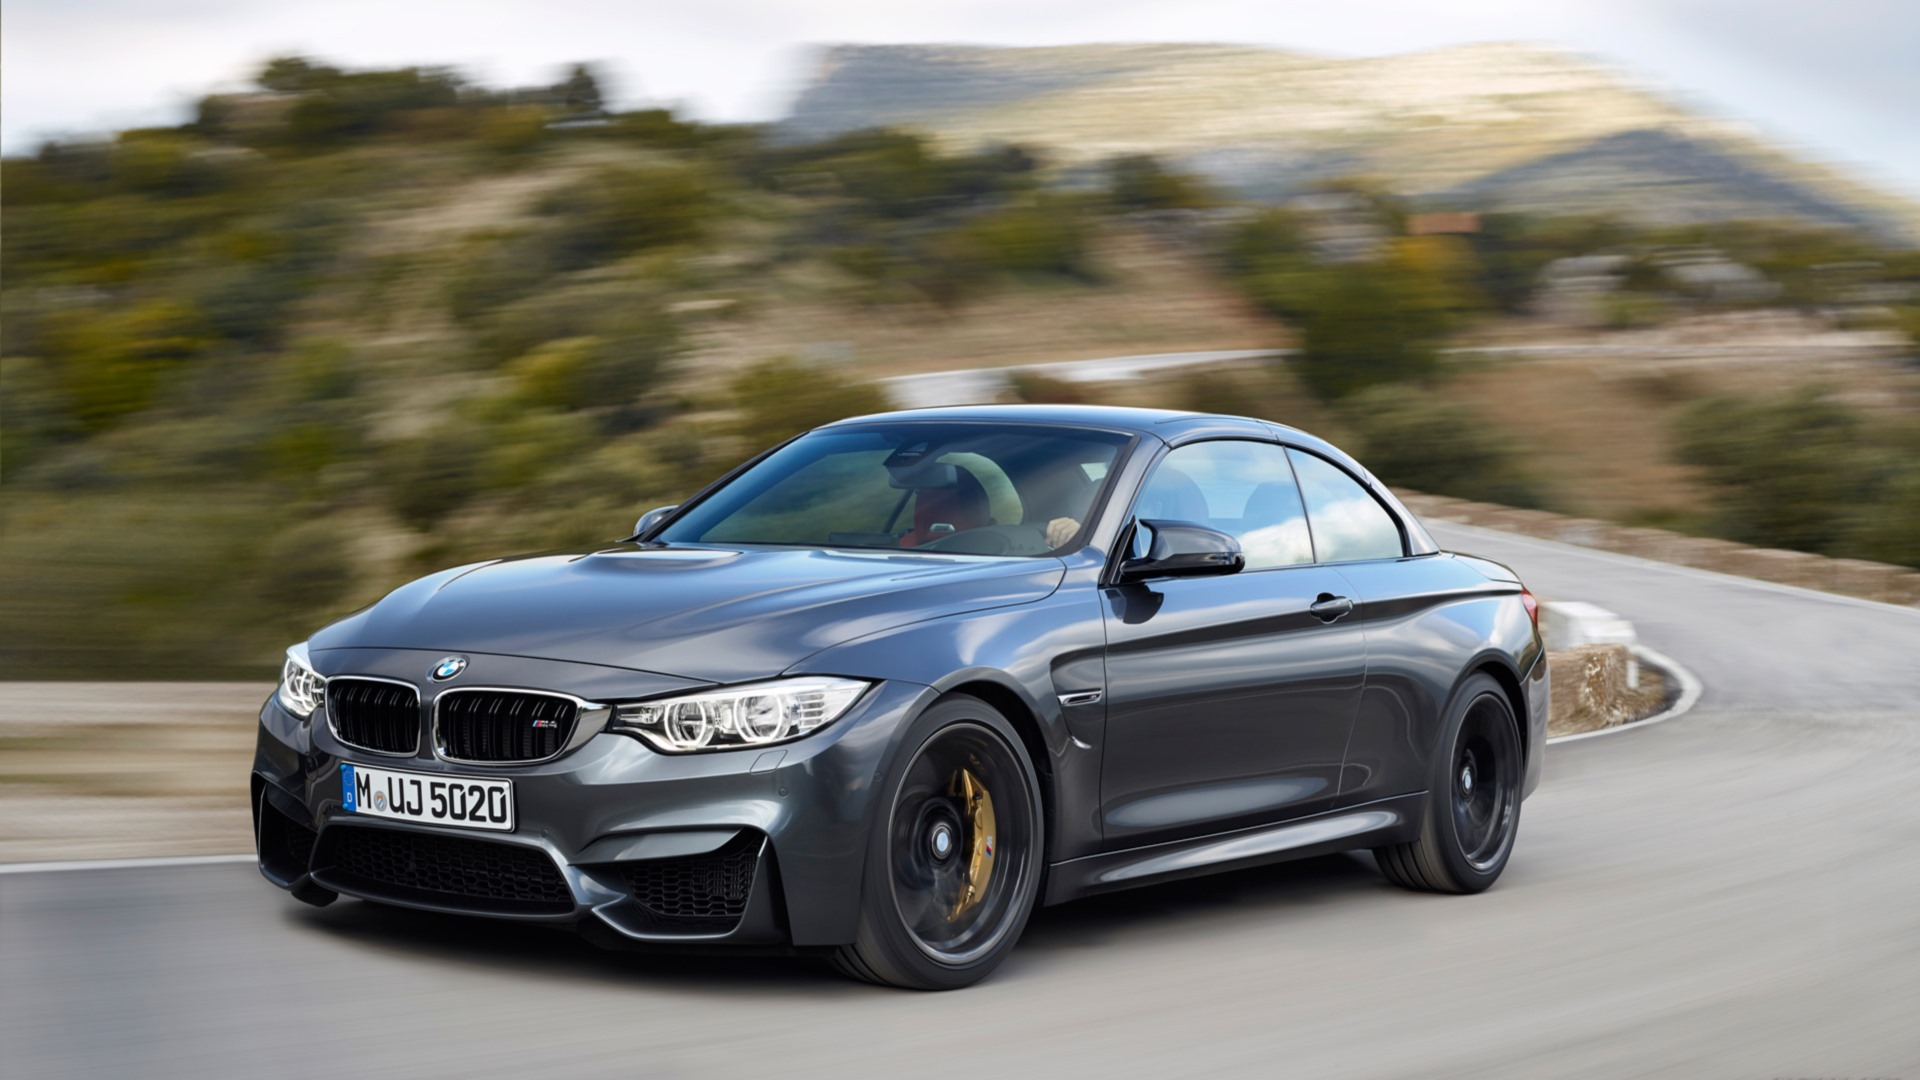 10 2015 Bmw M4 Cabrio Hd Wallpapers Background Images